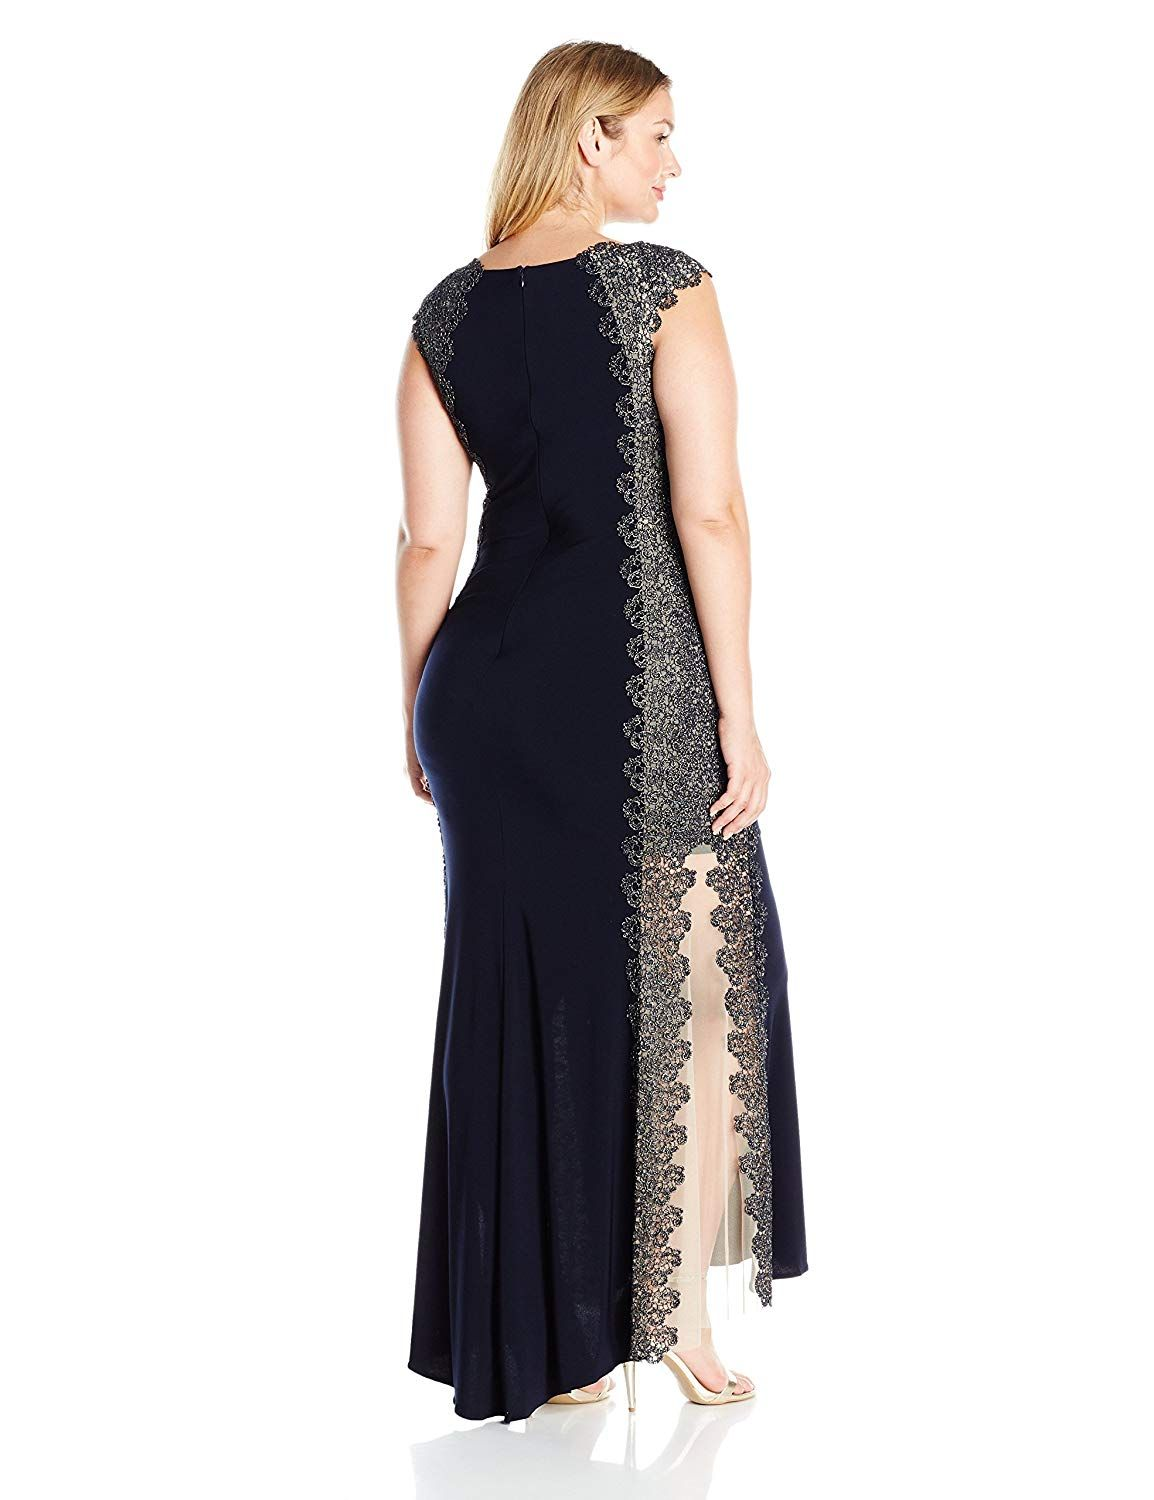 Xscape womenus plussize long dress with lace sides read more at